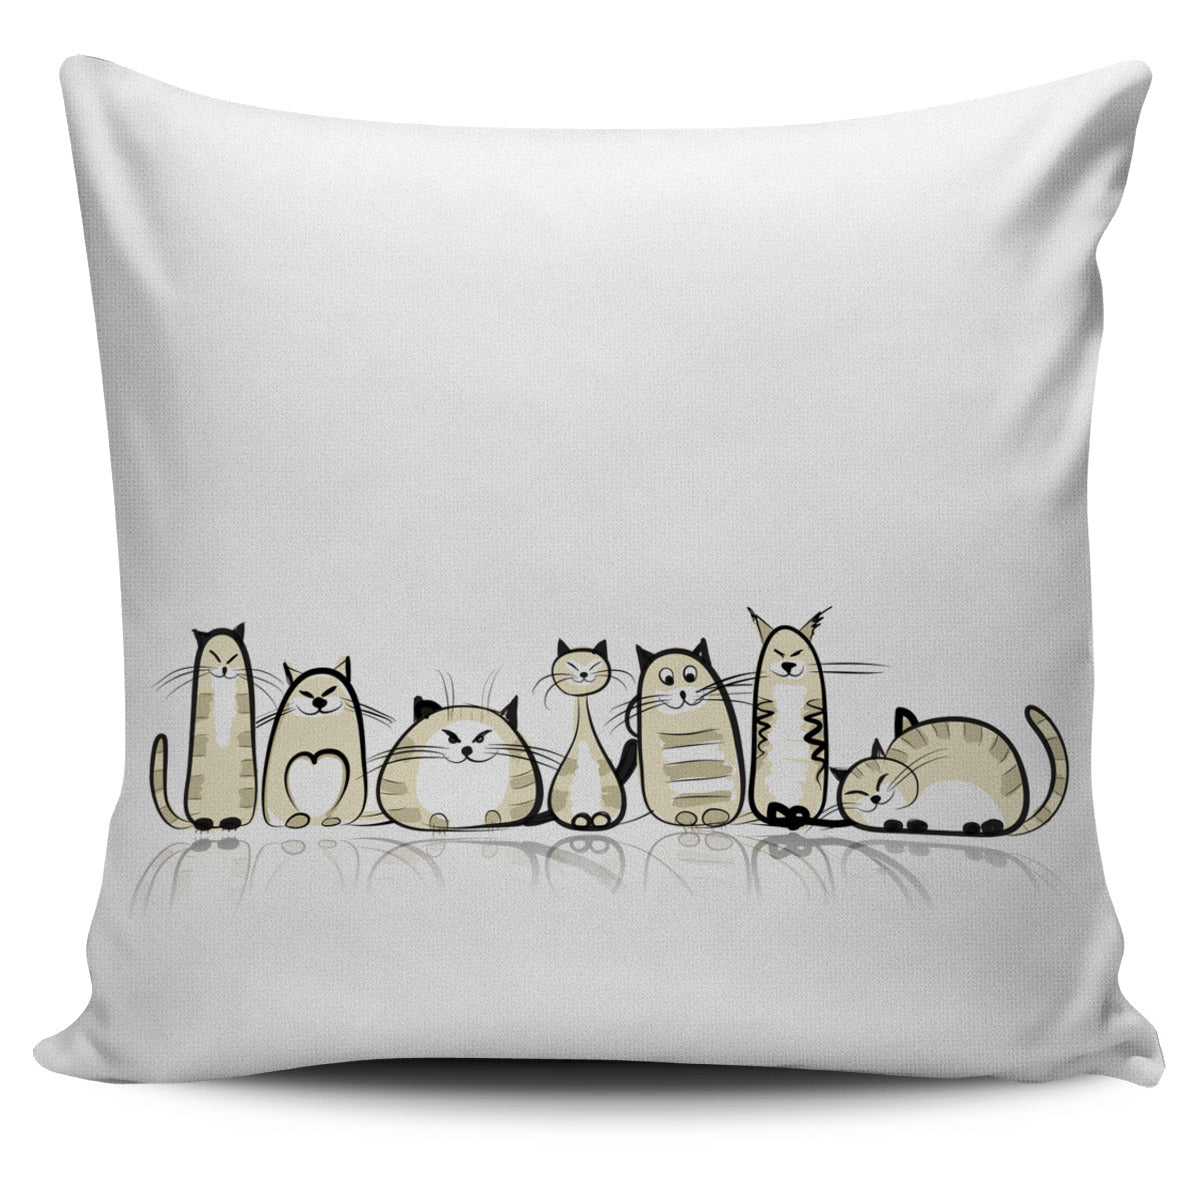 Funny Cat II Pillow Cover - Hello Moa